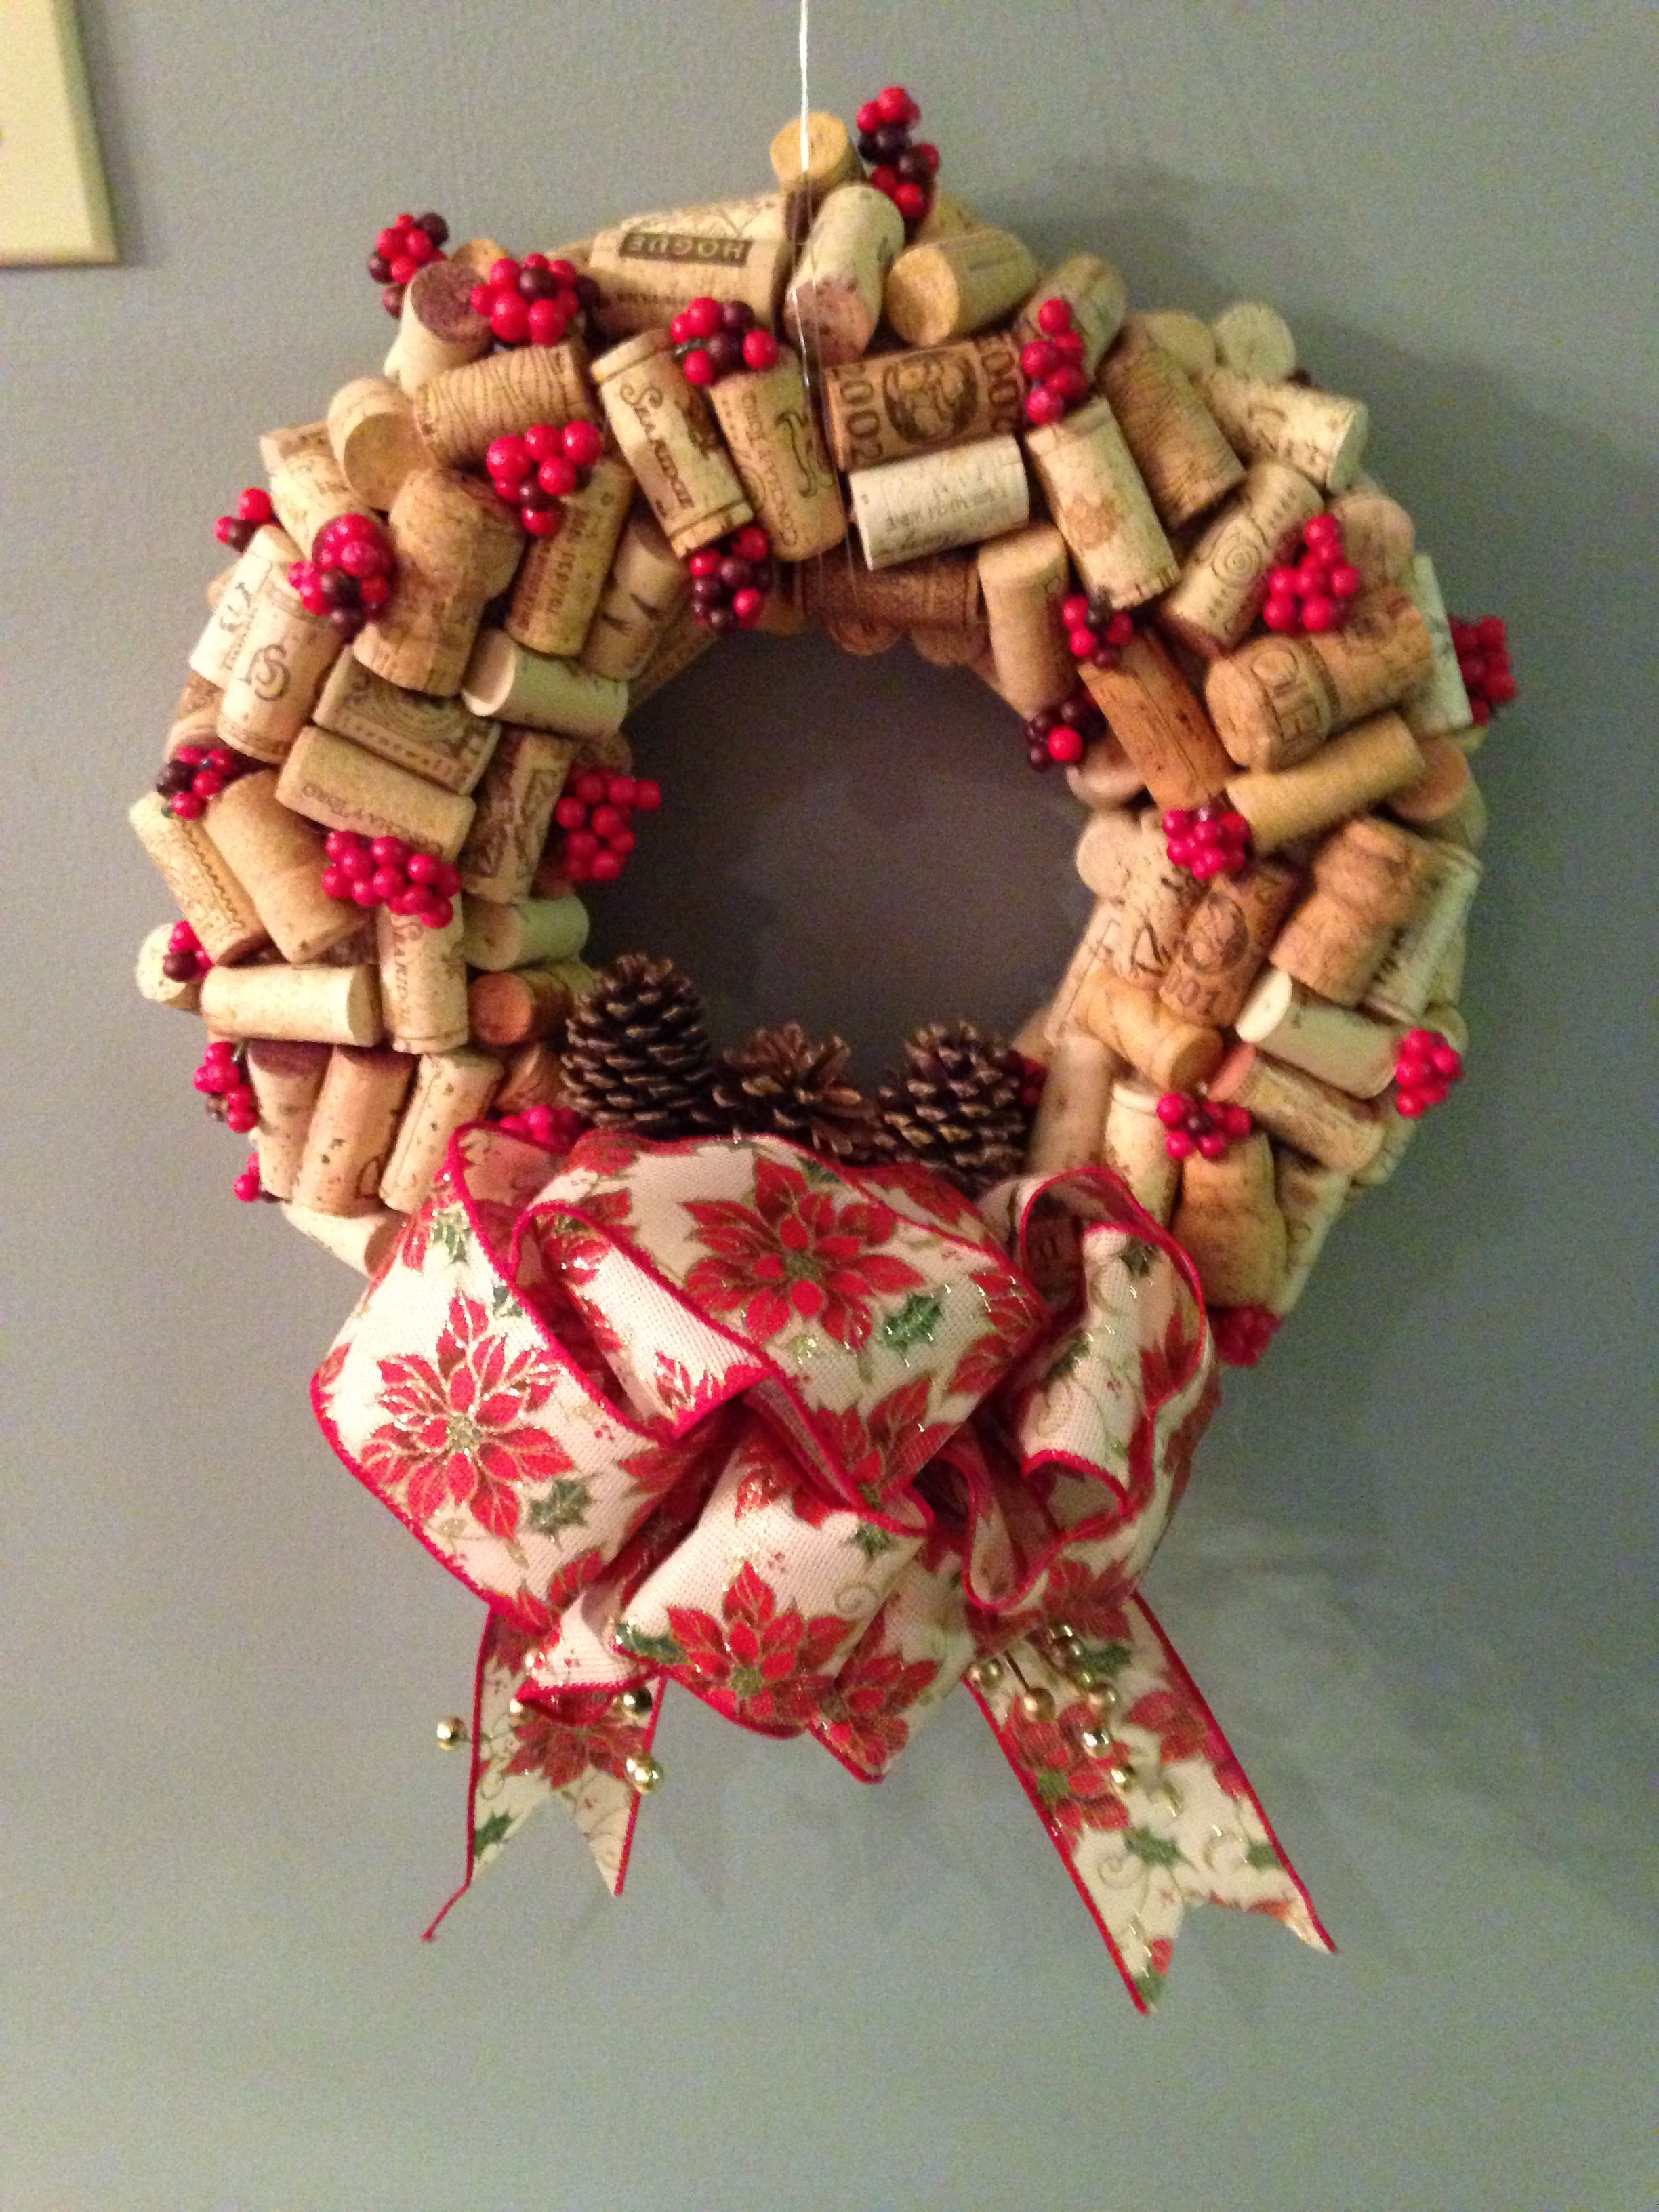 Wine cork Christmas wreath totally different but like the idea